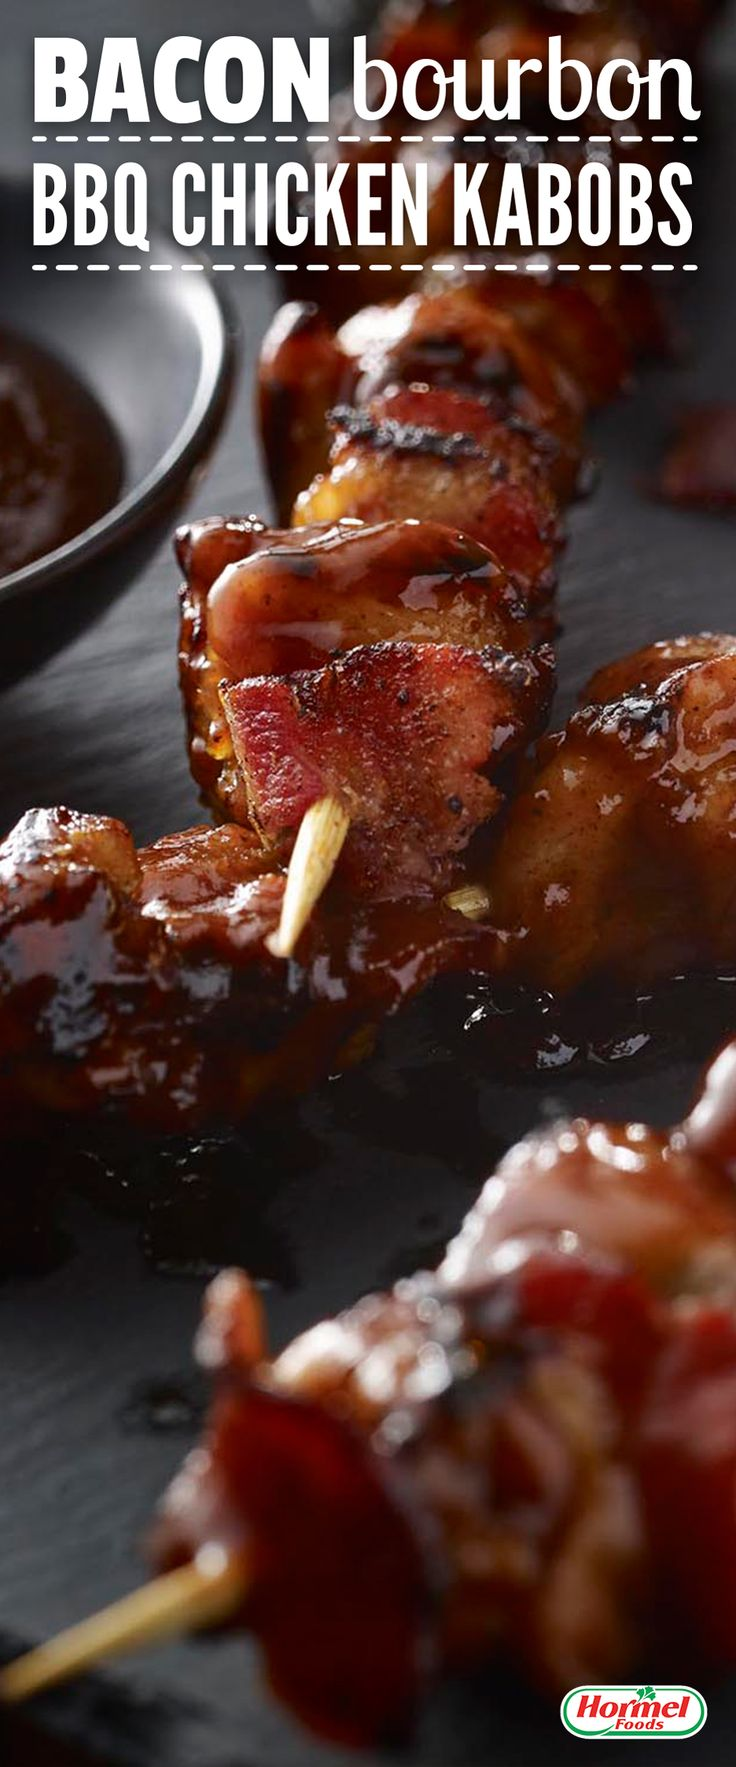 Bacon lovers and chicken lovers rejoice with the delicious combo in these Bacon Bourbon BBQ Chicken Kebabs.